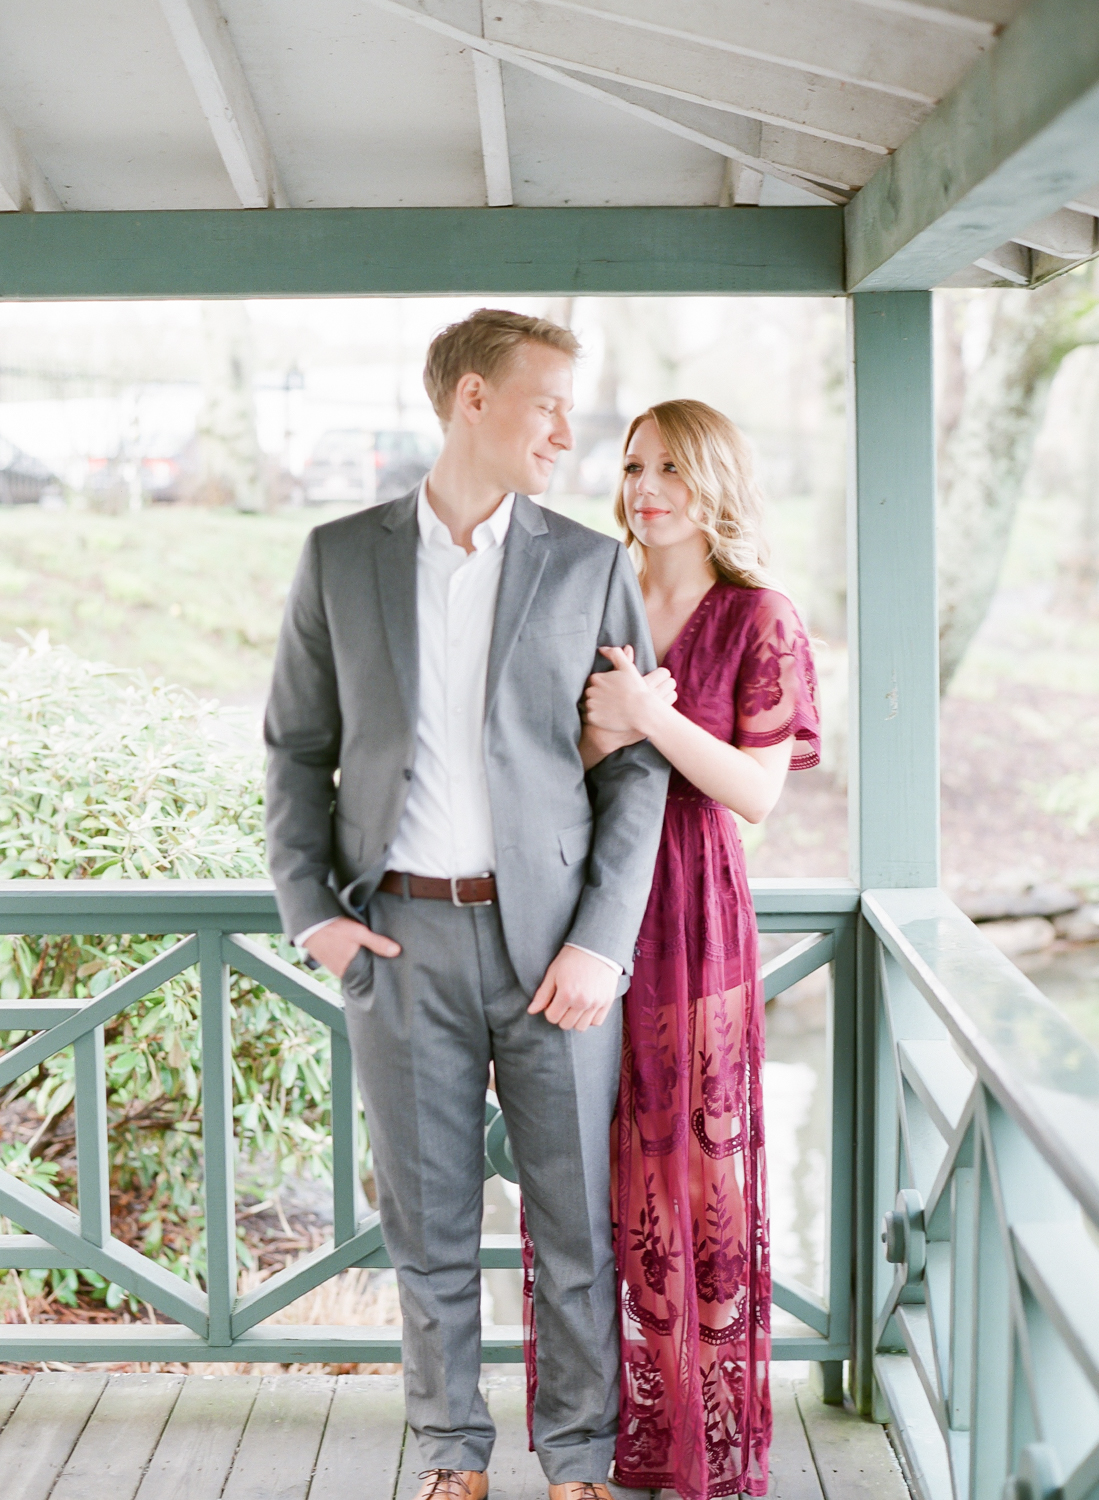 Jacqueline Anne Photography - Amanda and Brent-82.jpg